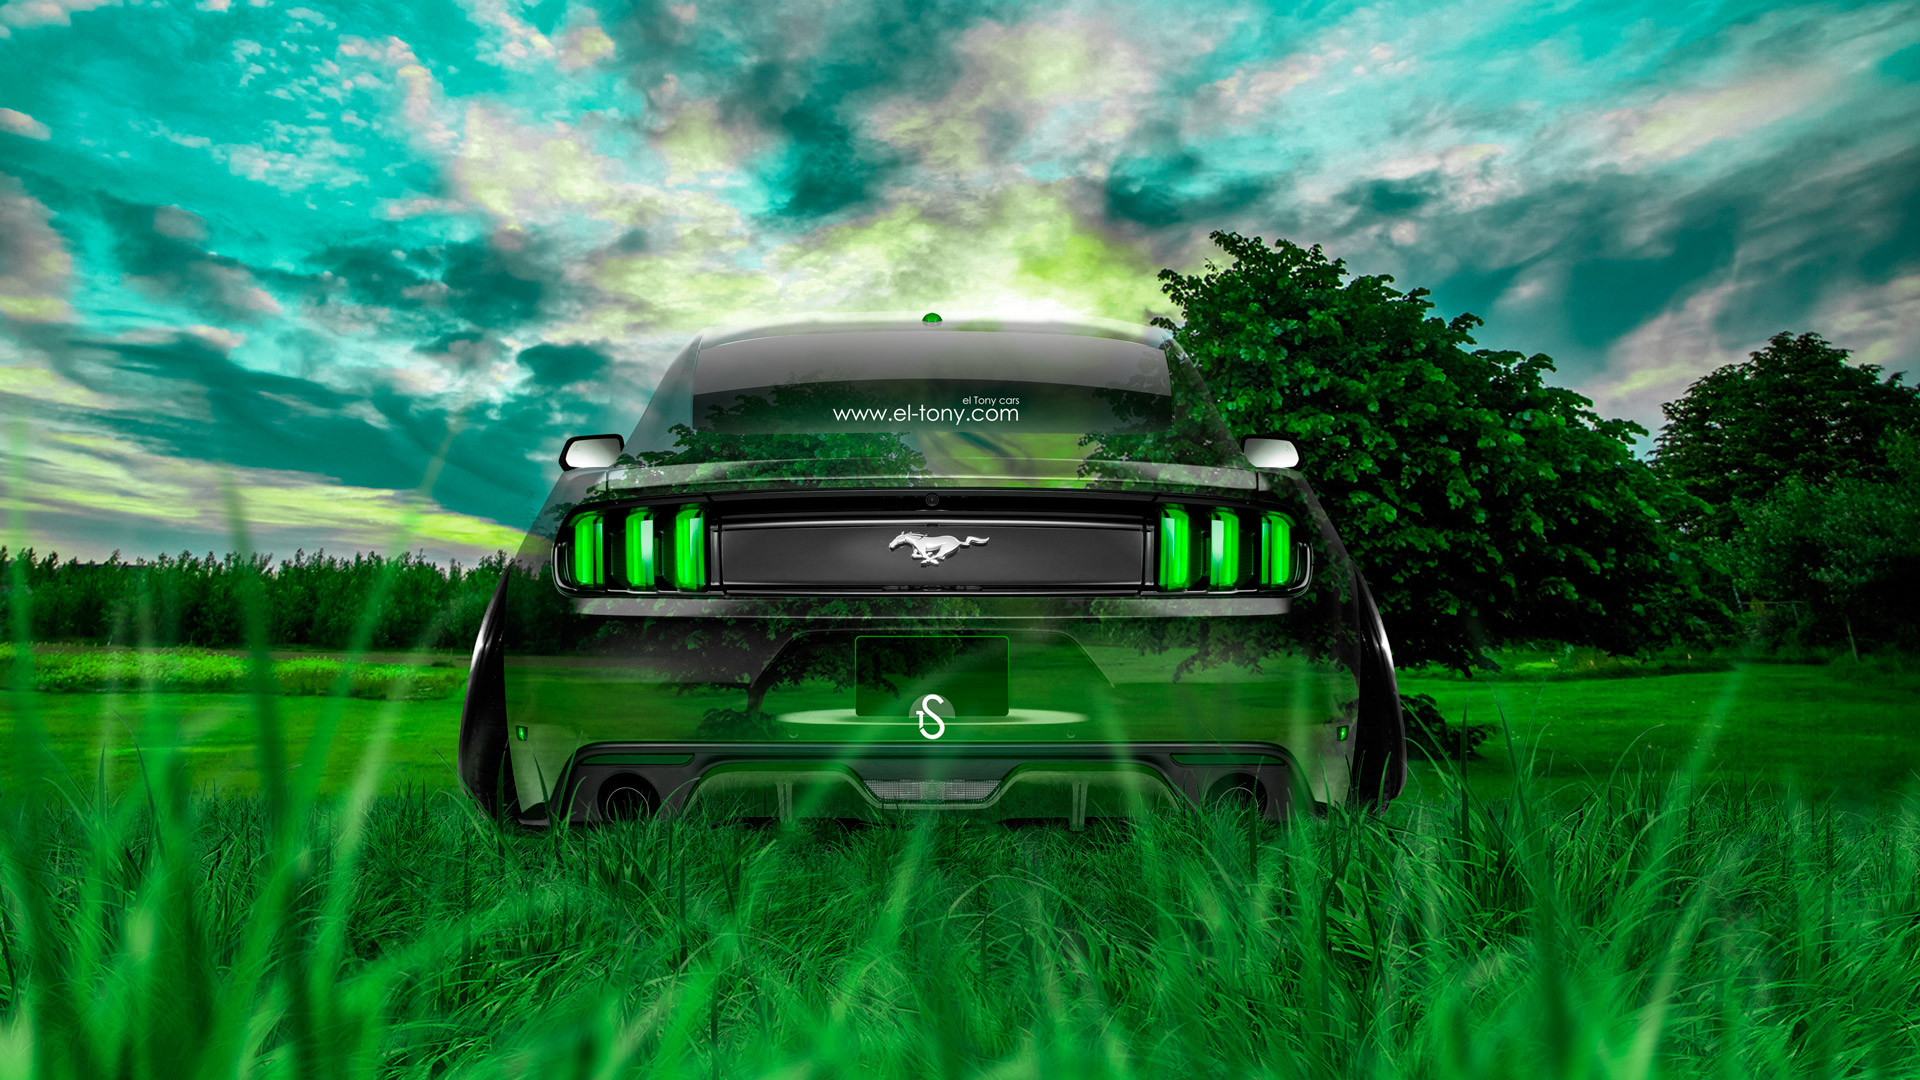 Merveilleux Ford Mustang Muscle Back Crystal Nature Car 2014